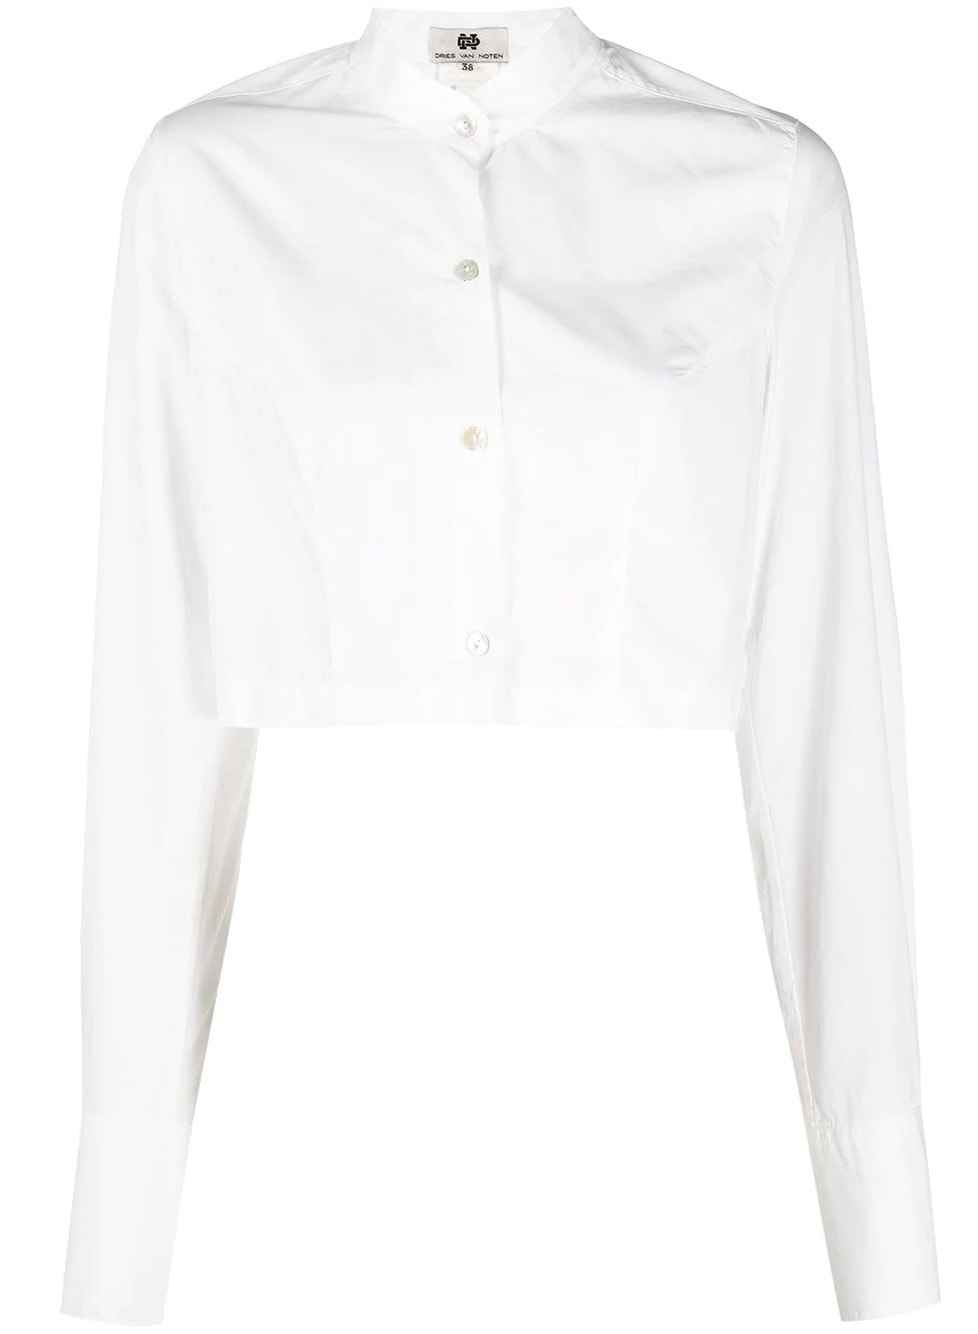 Dries Van Noten Pre-Owned 1990s Cropped button-up Shirt - Farfetch